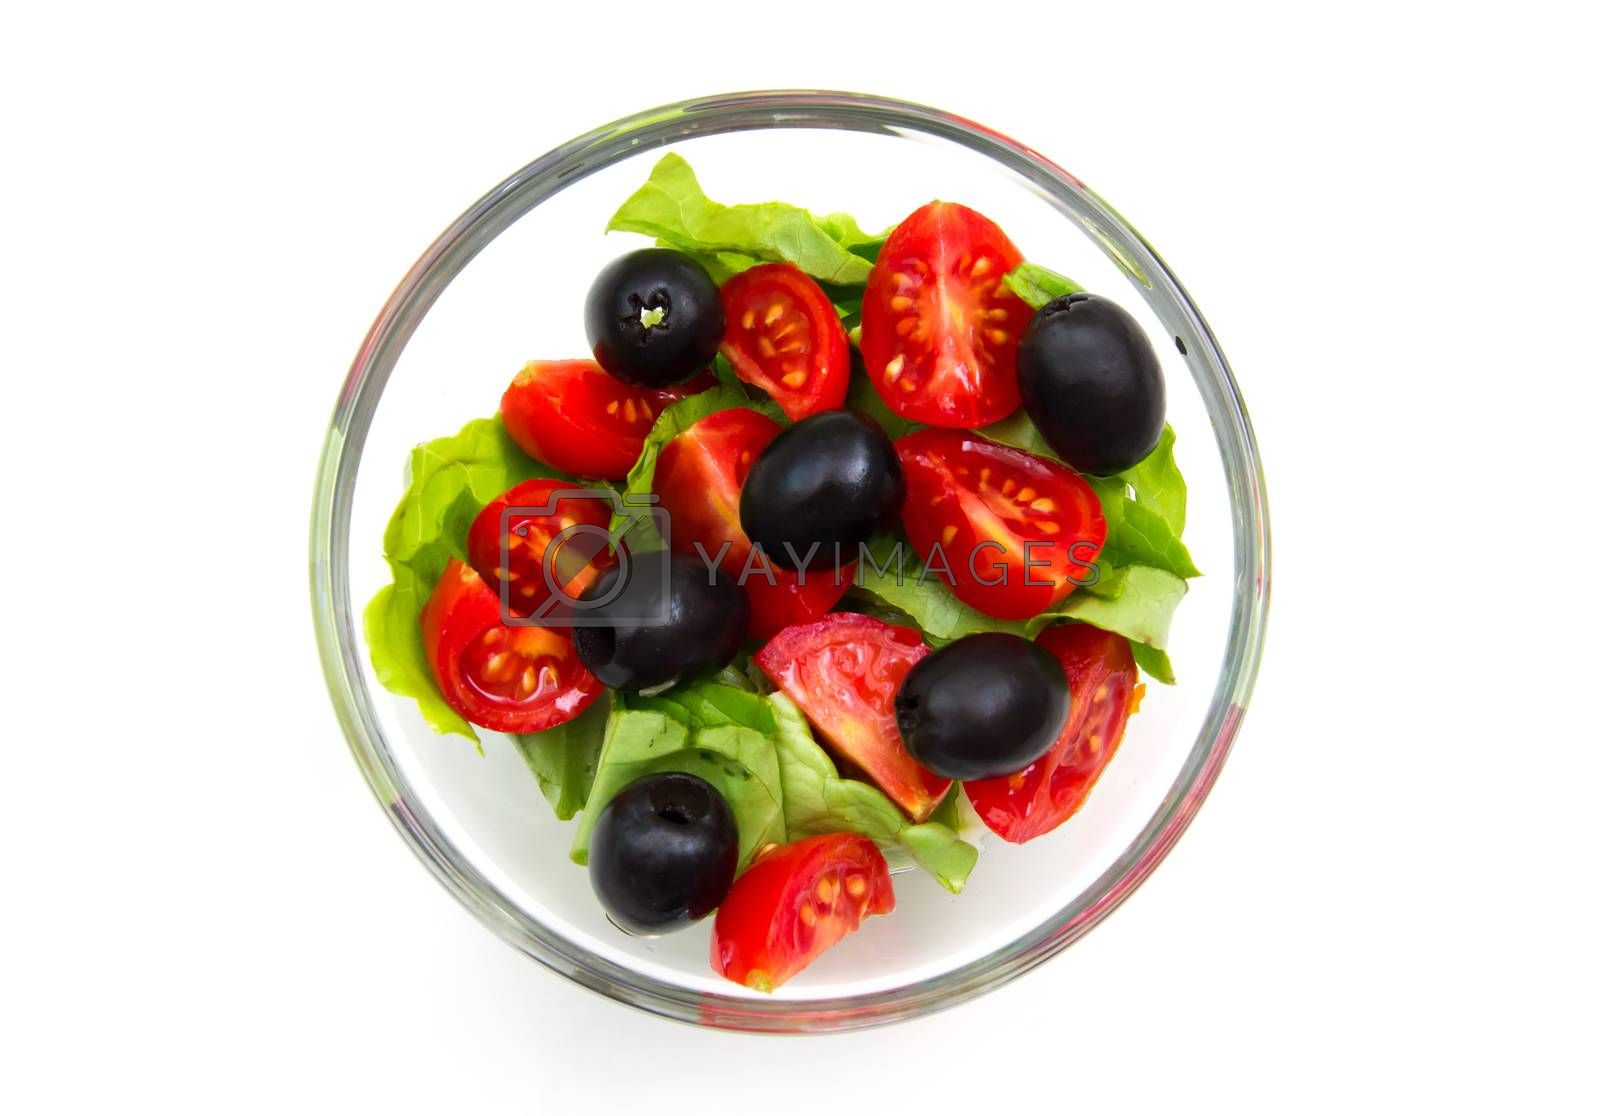 Fresh salad from above on white background